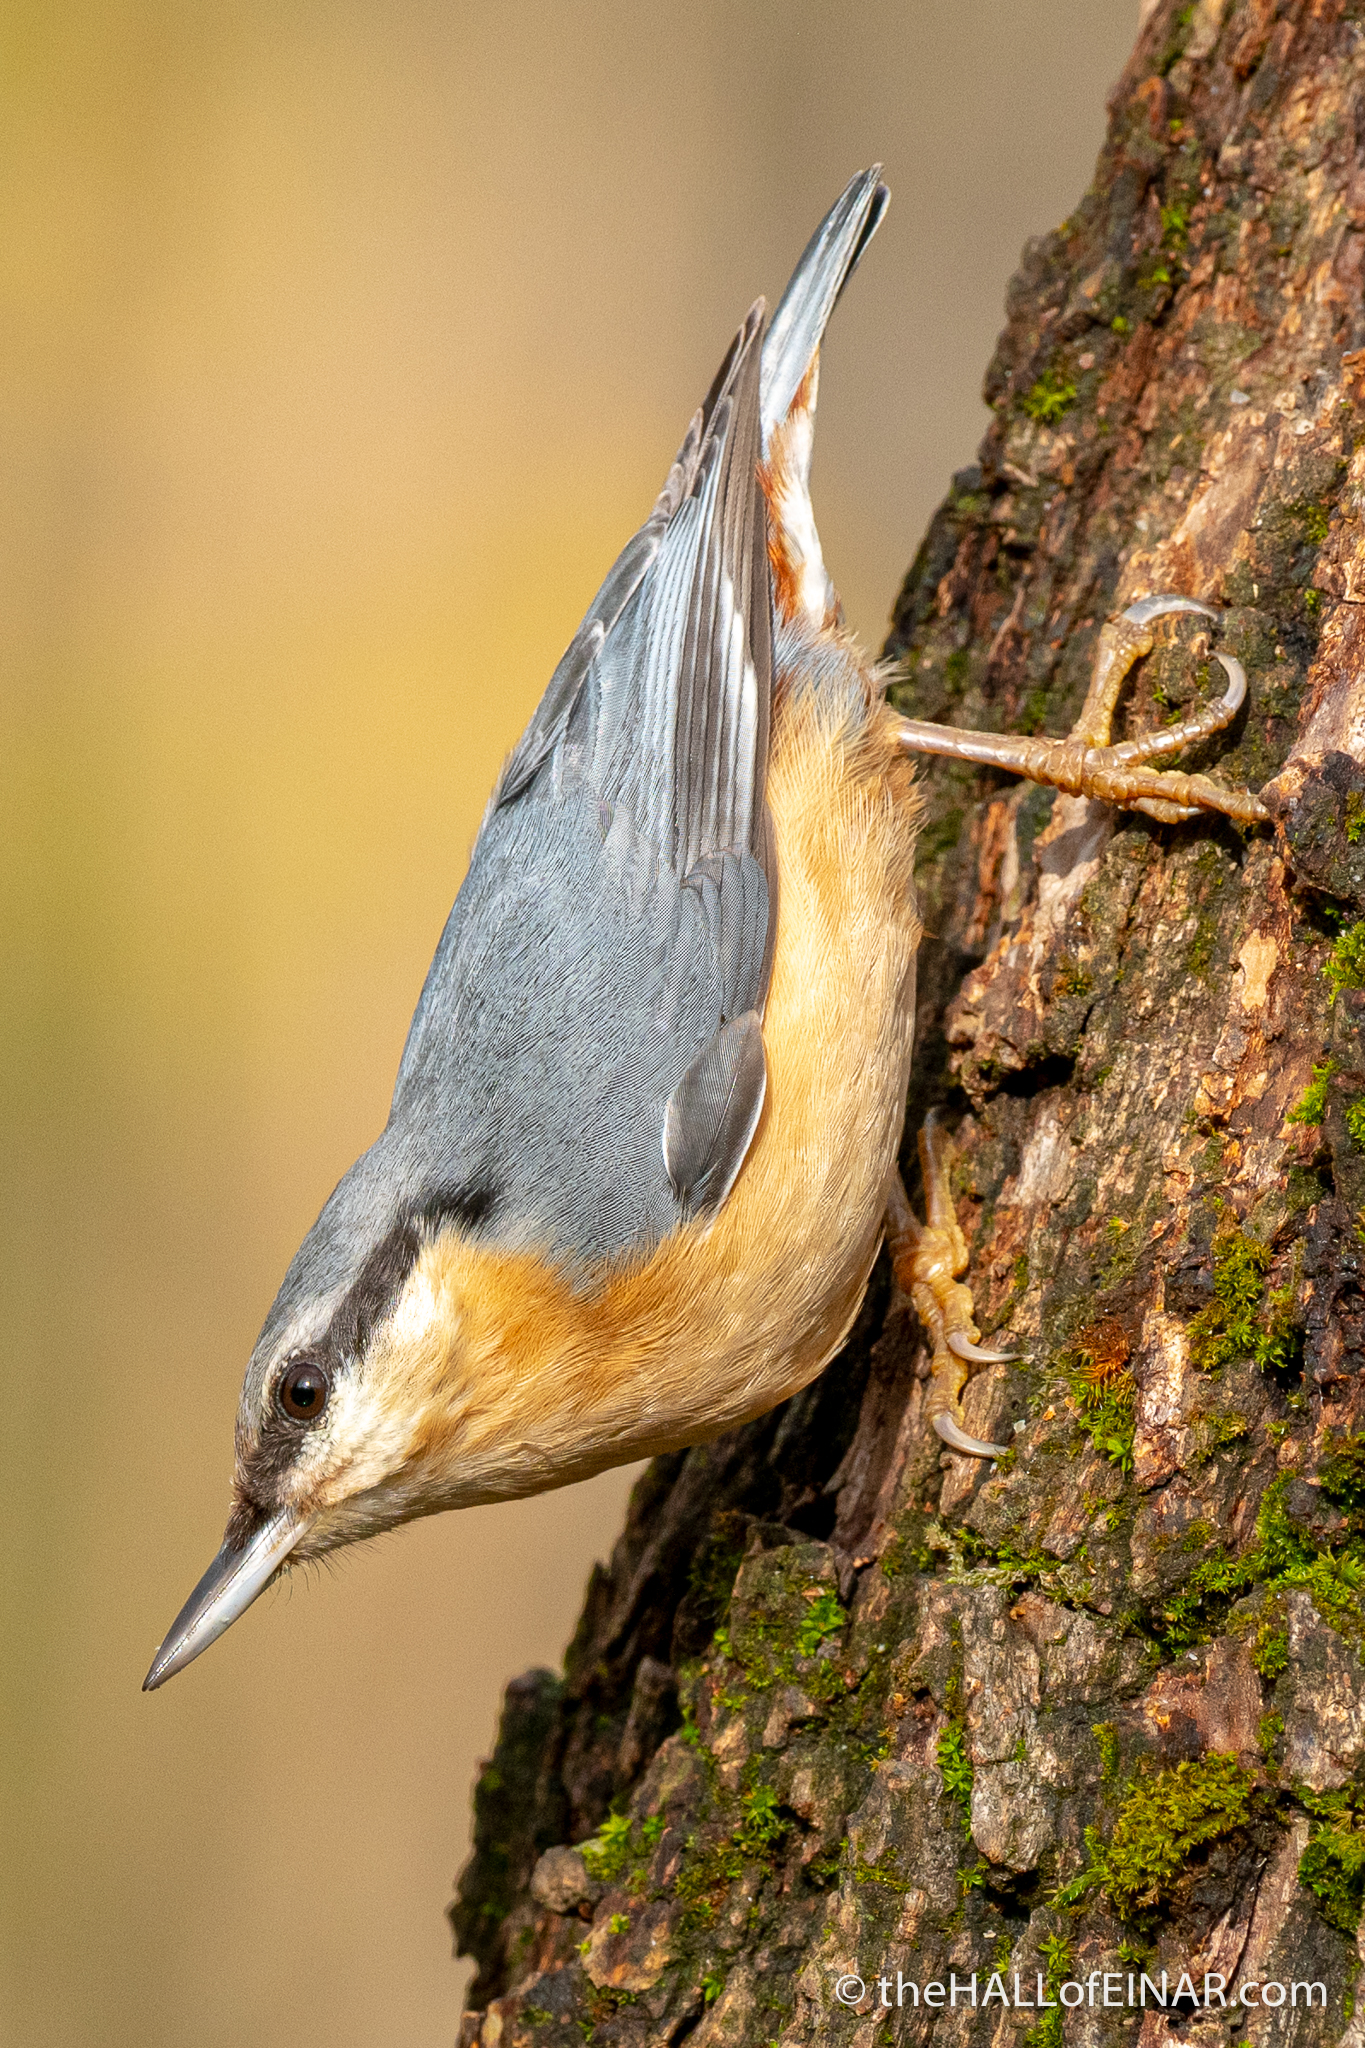 Nuthatch - Lago di Alviano - The Hall of Einar - photograph (c) David Bailey (not the)